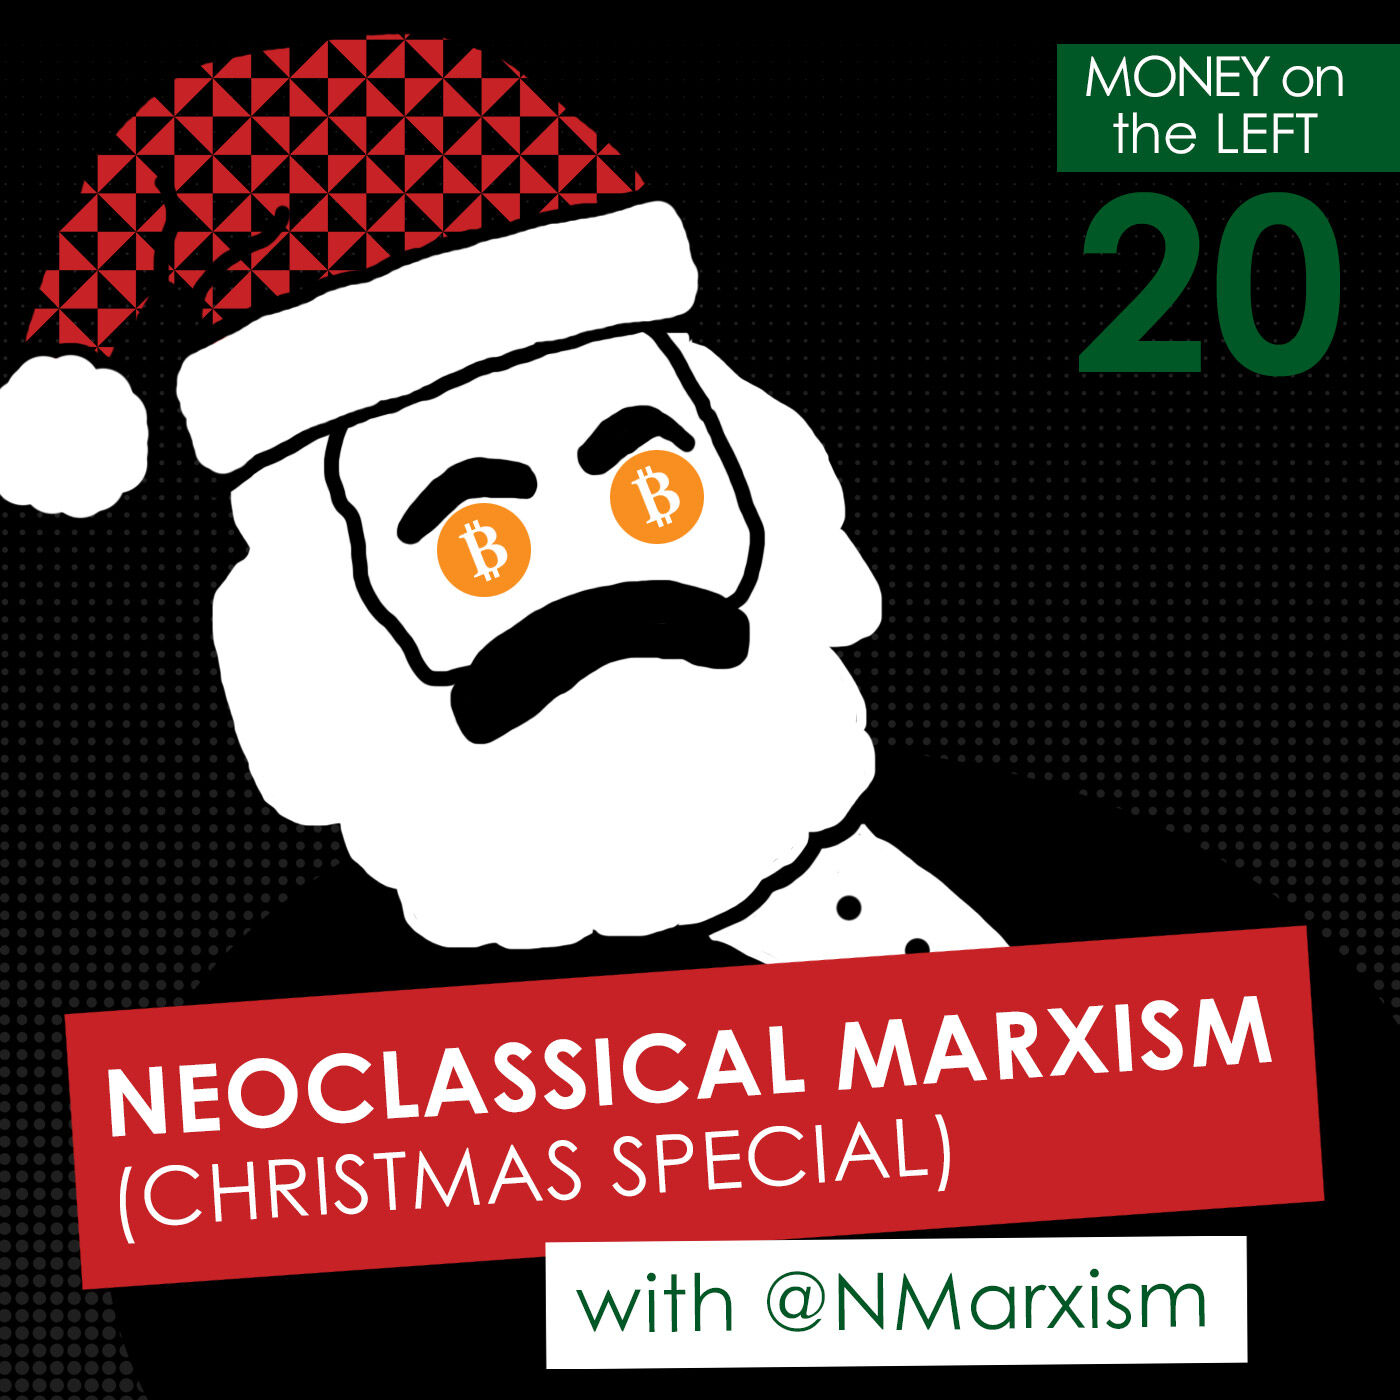 Neoclassical Marxism (Christmas Special) with @NMarxism